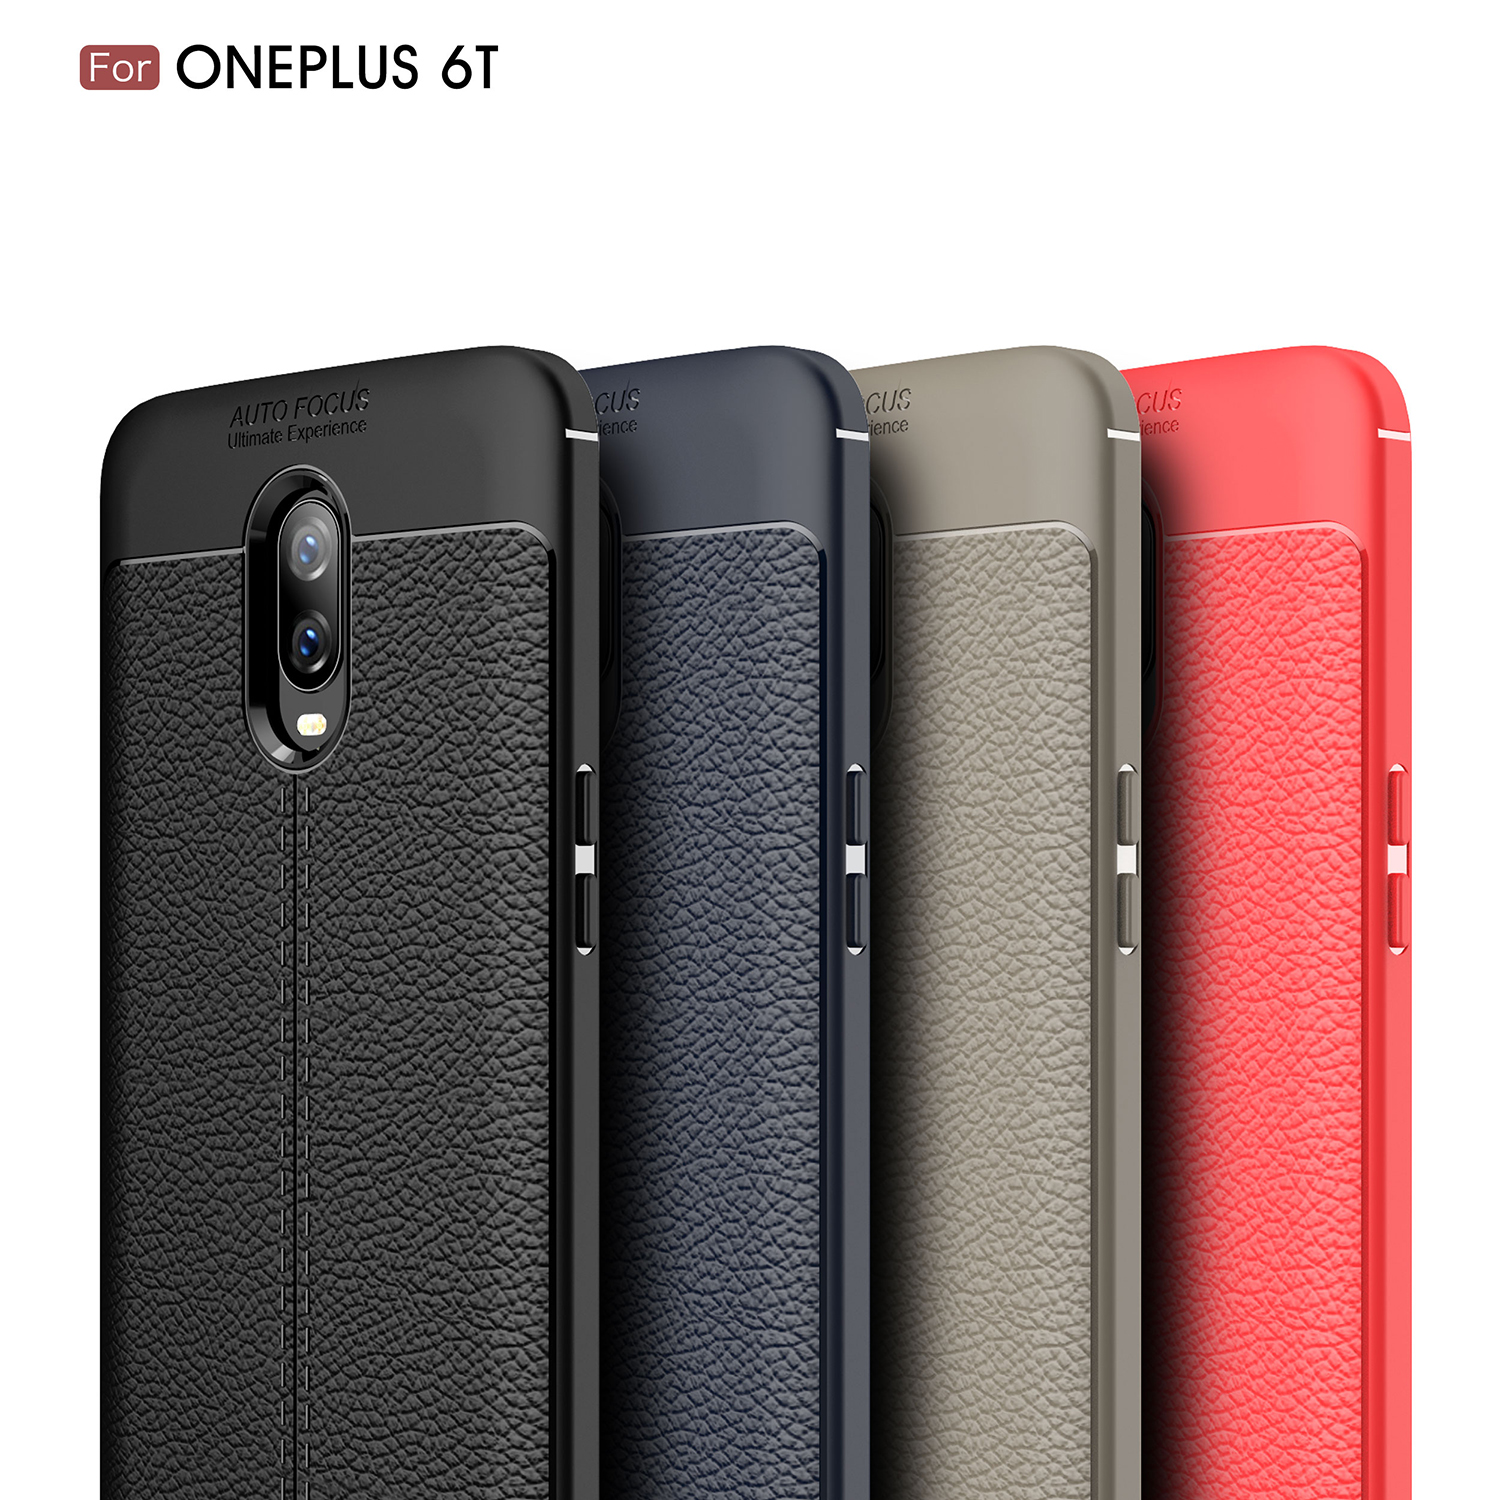 2018 Hot Selling Case for Oneplus 6t Mobile Cover